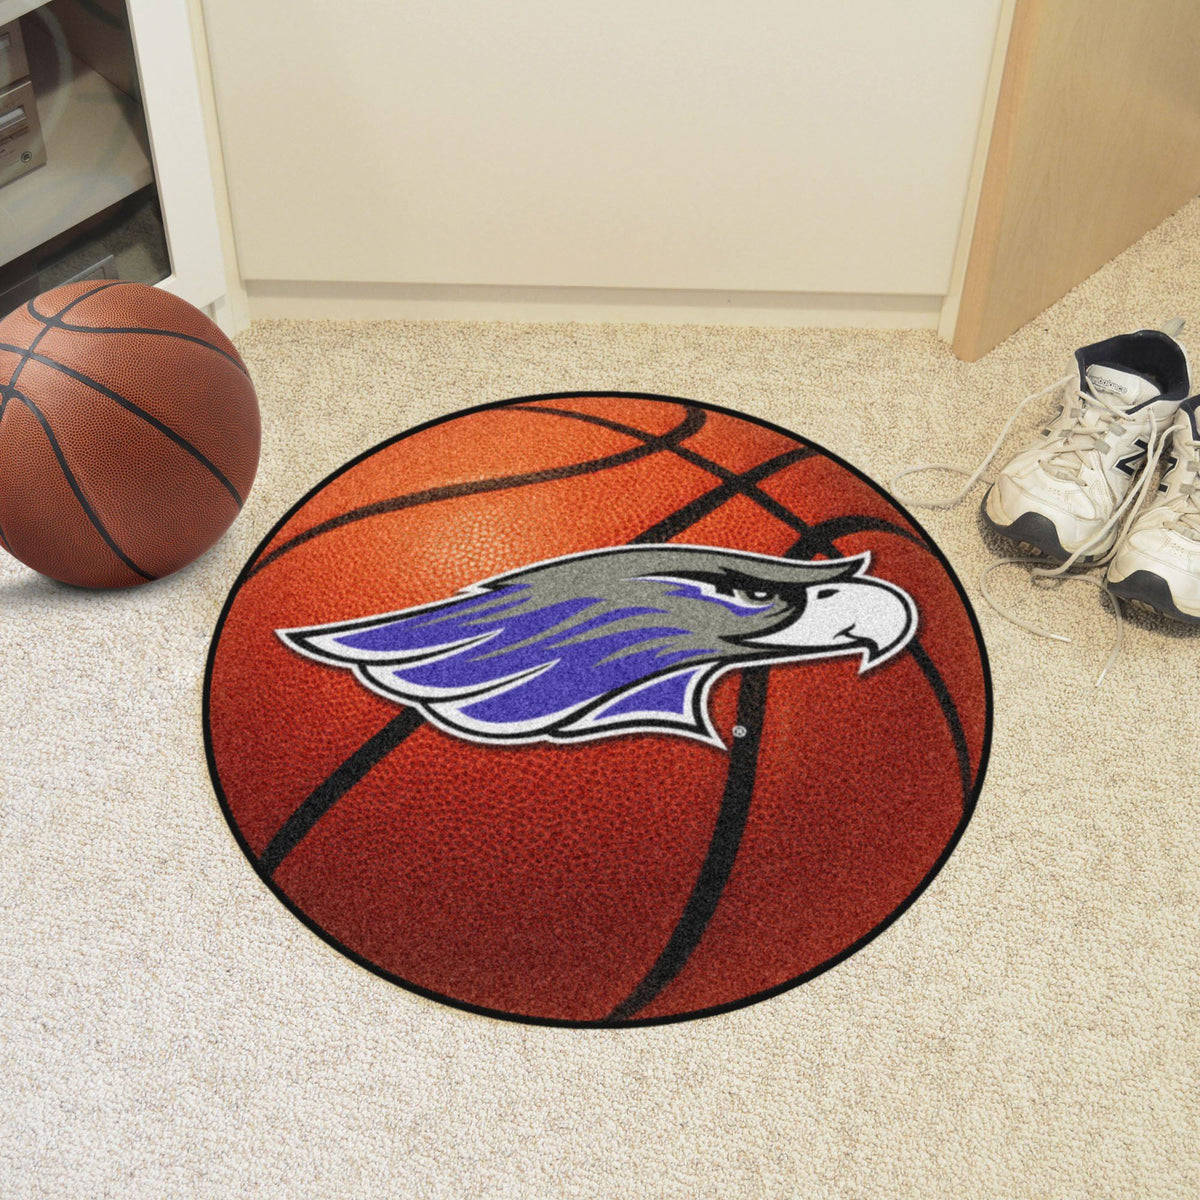 Collegiate - Basketball Mat: T - Z Collegiate Mats, Rectangular Mats, Basketball Mat, Collegiate, Home Fan Mats Wisconsin-Whitewater